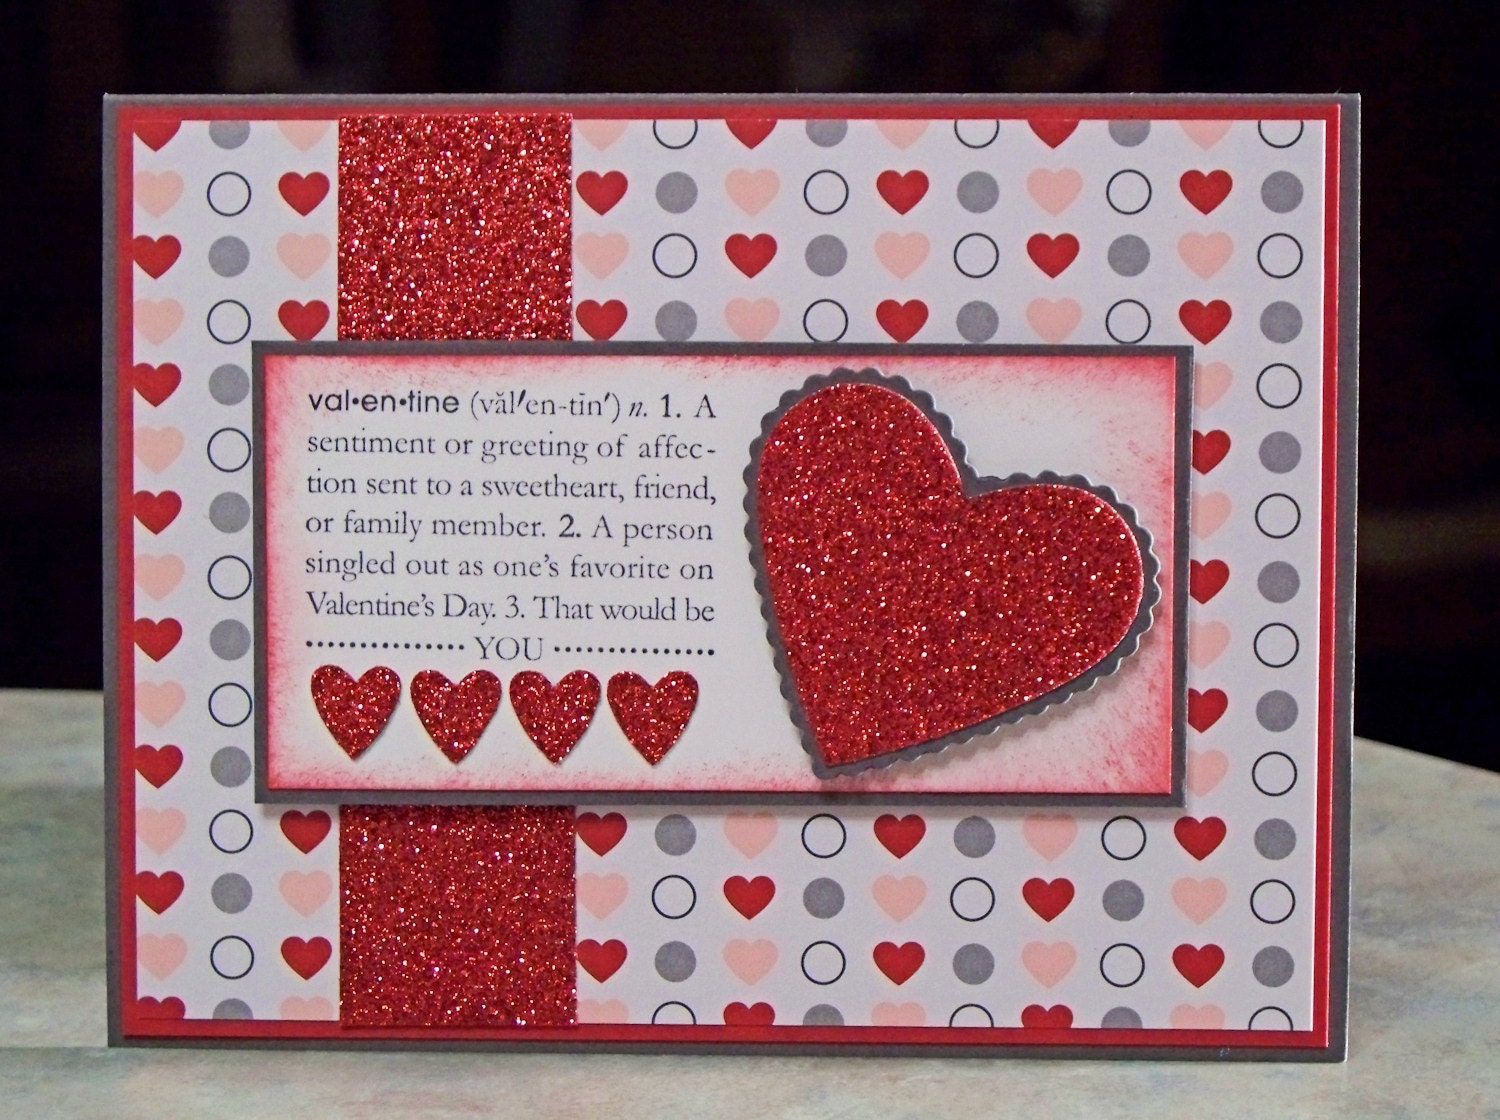 valentine's day card text ideas